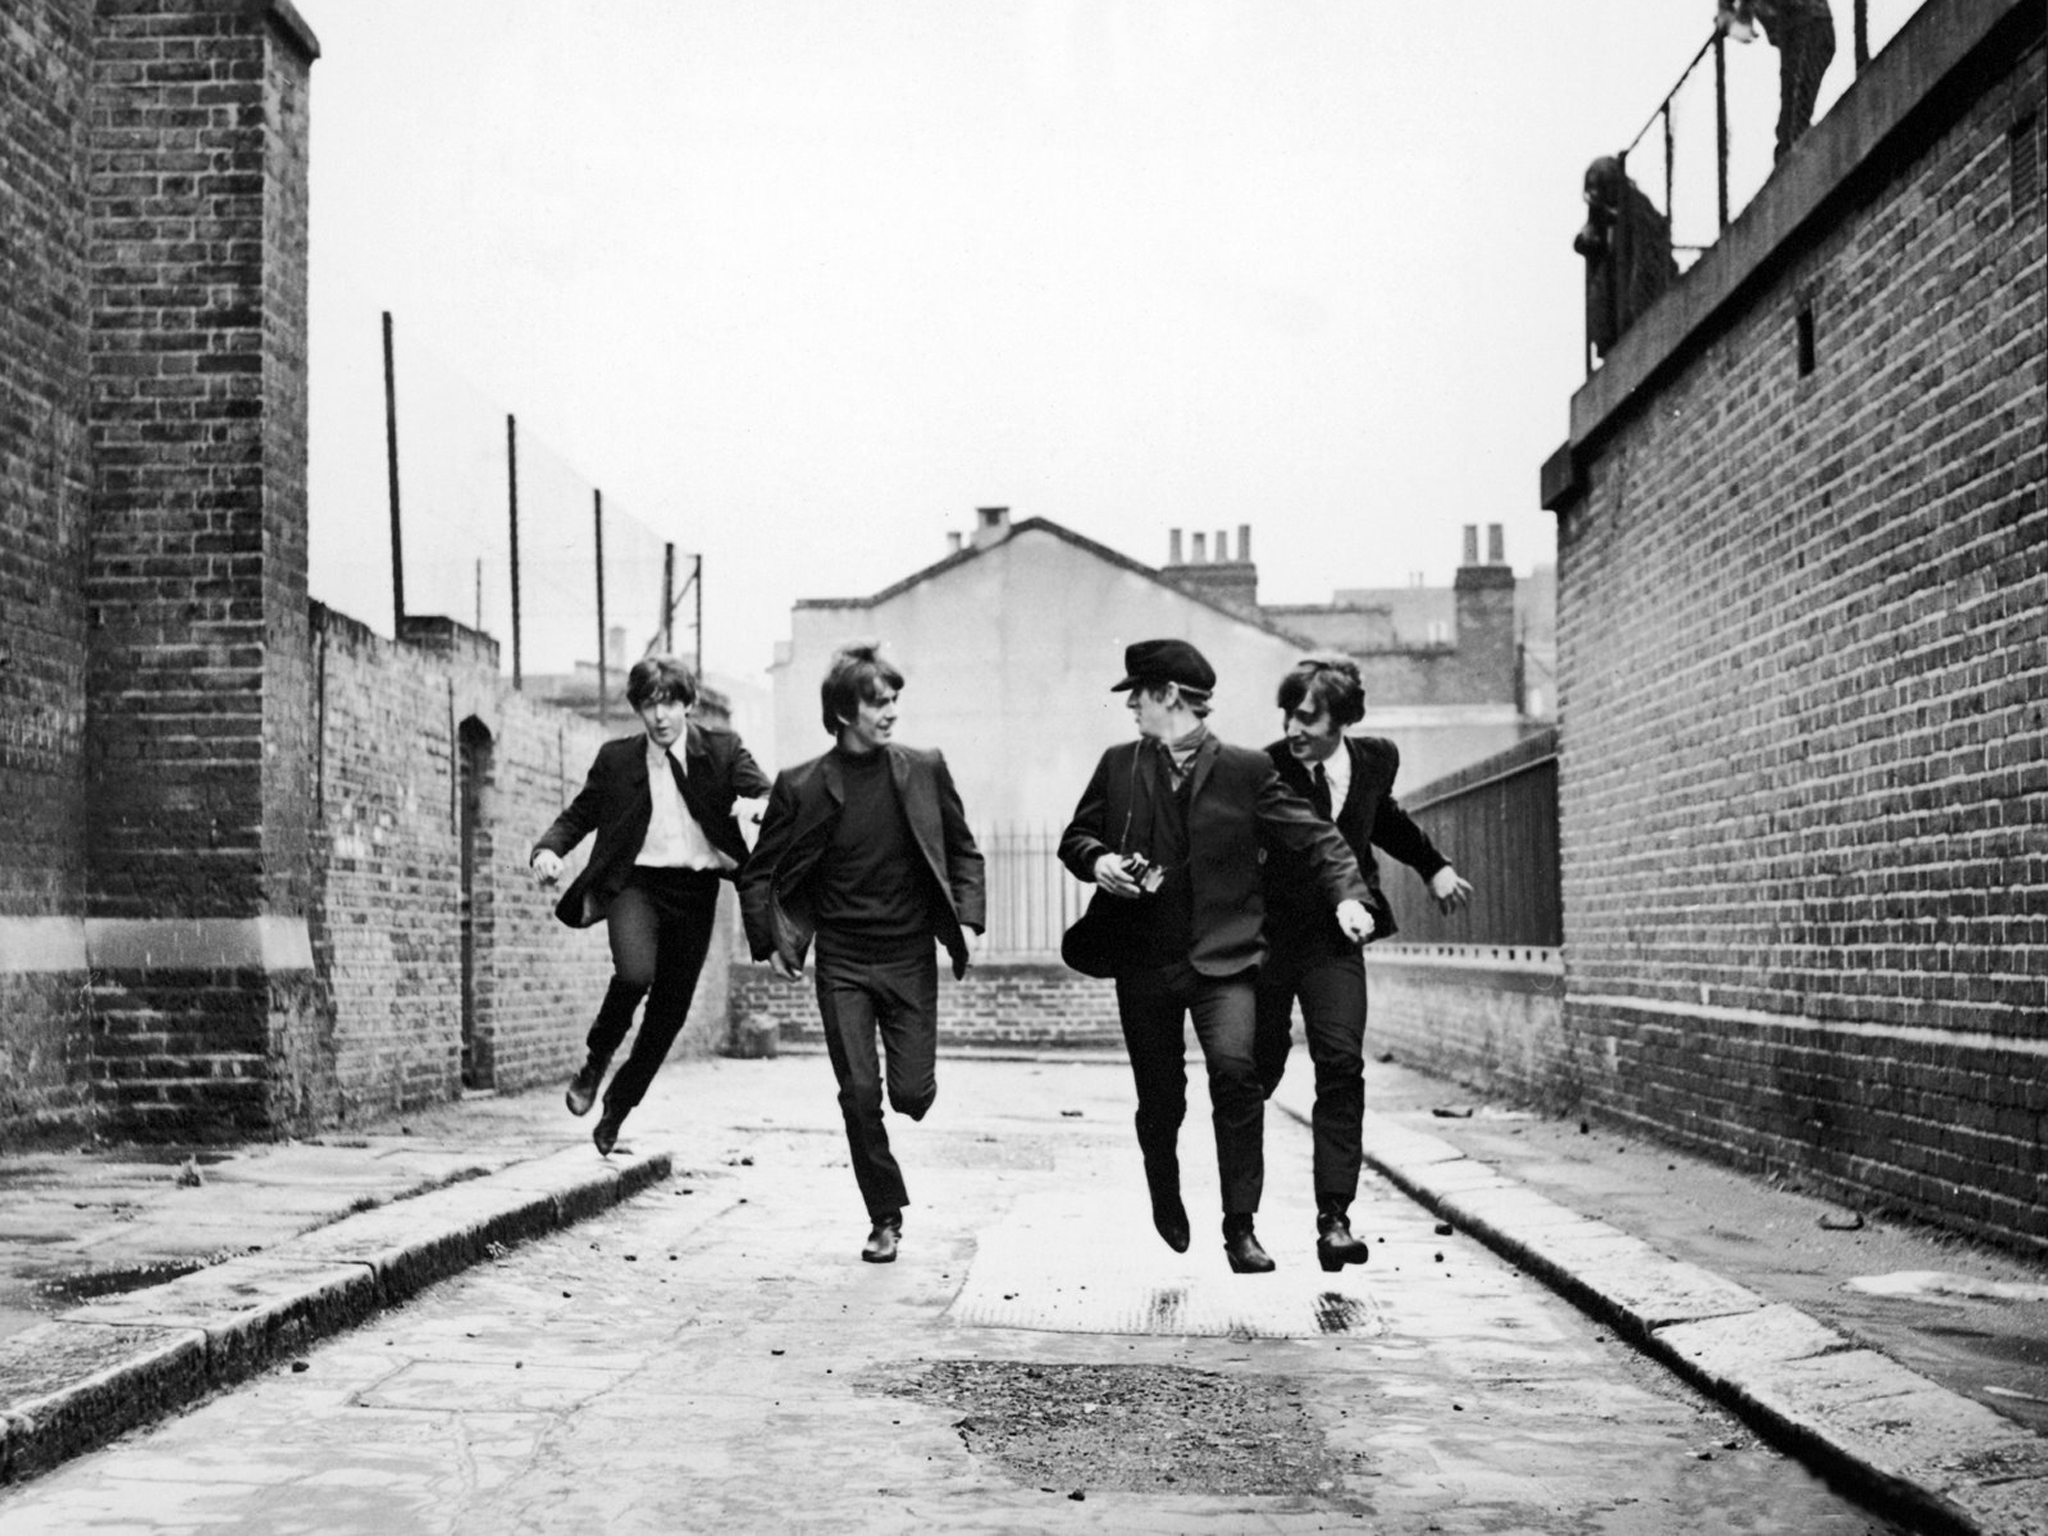 best comedy movies on netflix, A Hard Day's Night